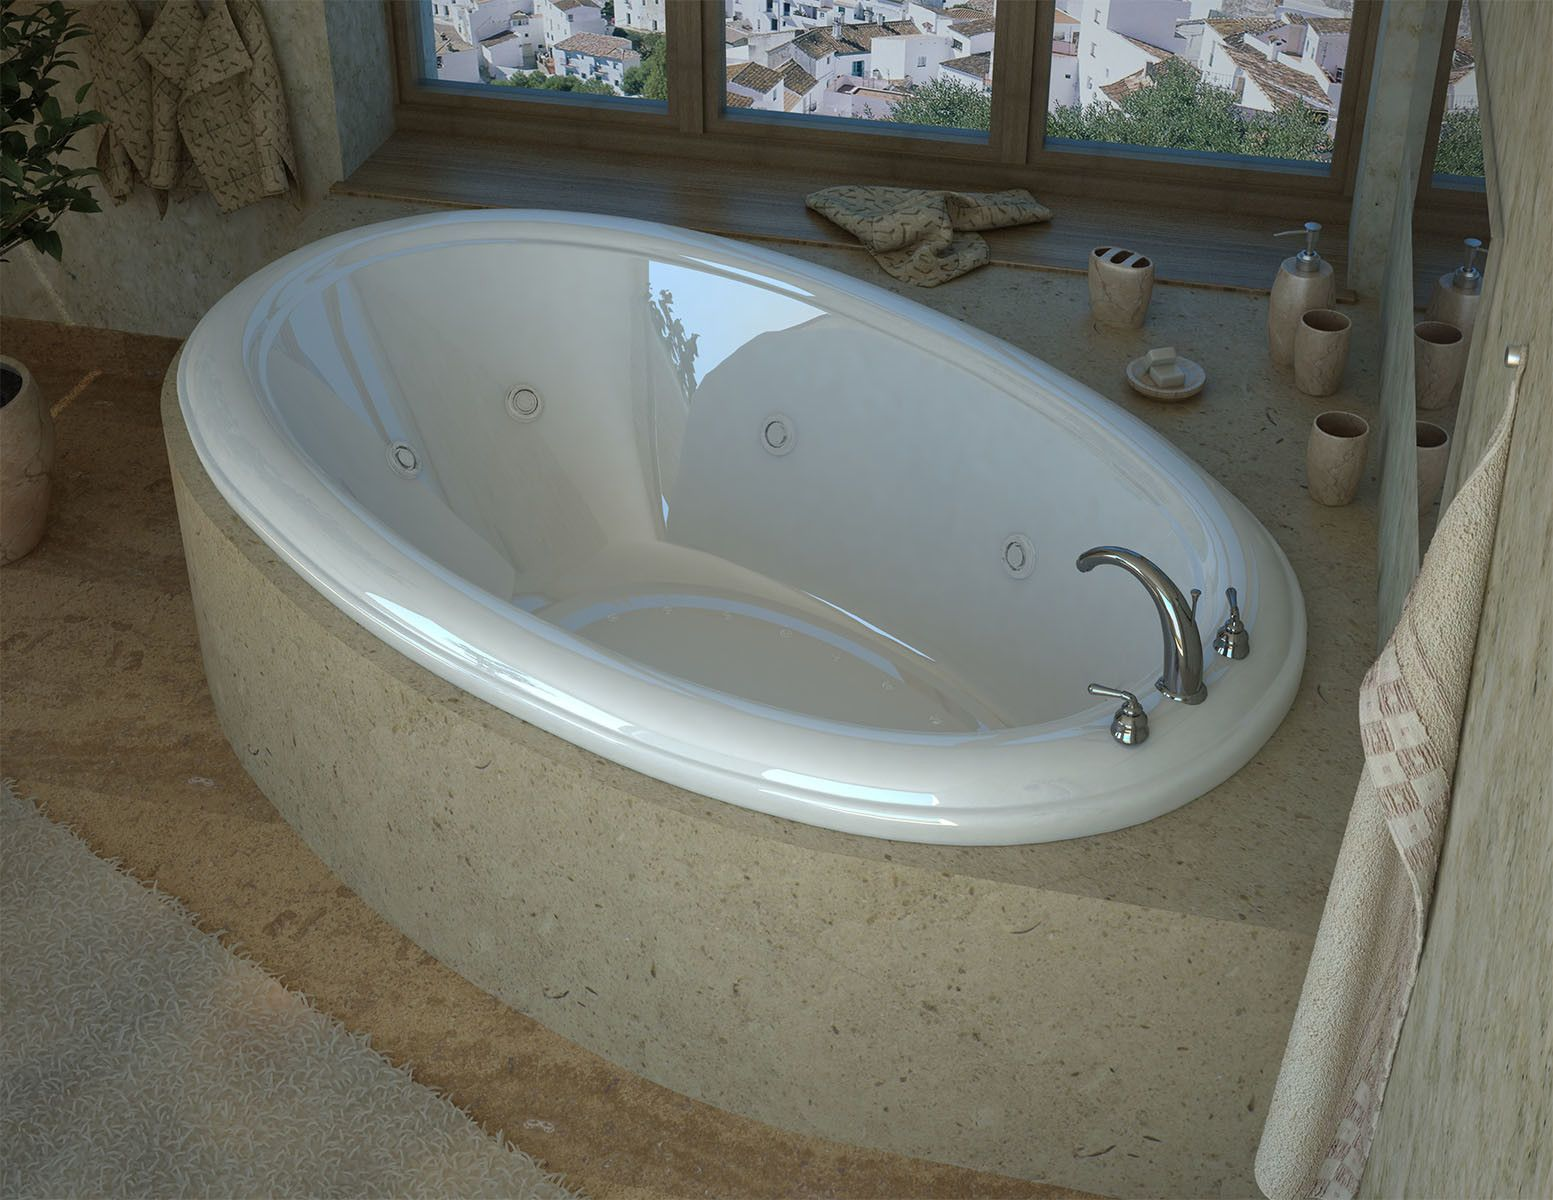 Features Solid One Piece Acrylic Construction With Non Porous